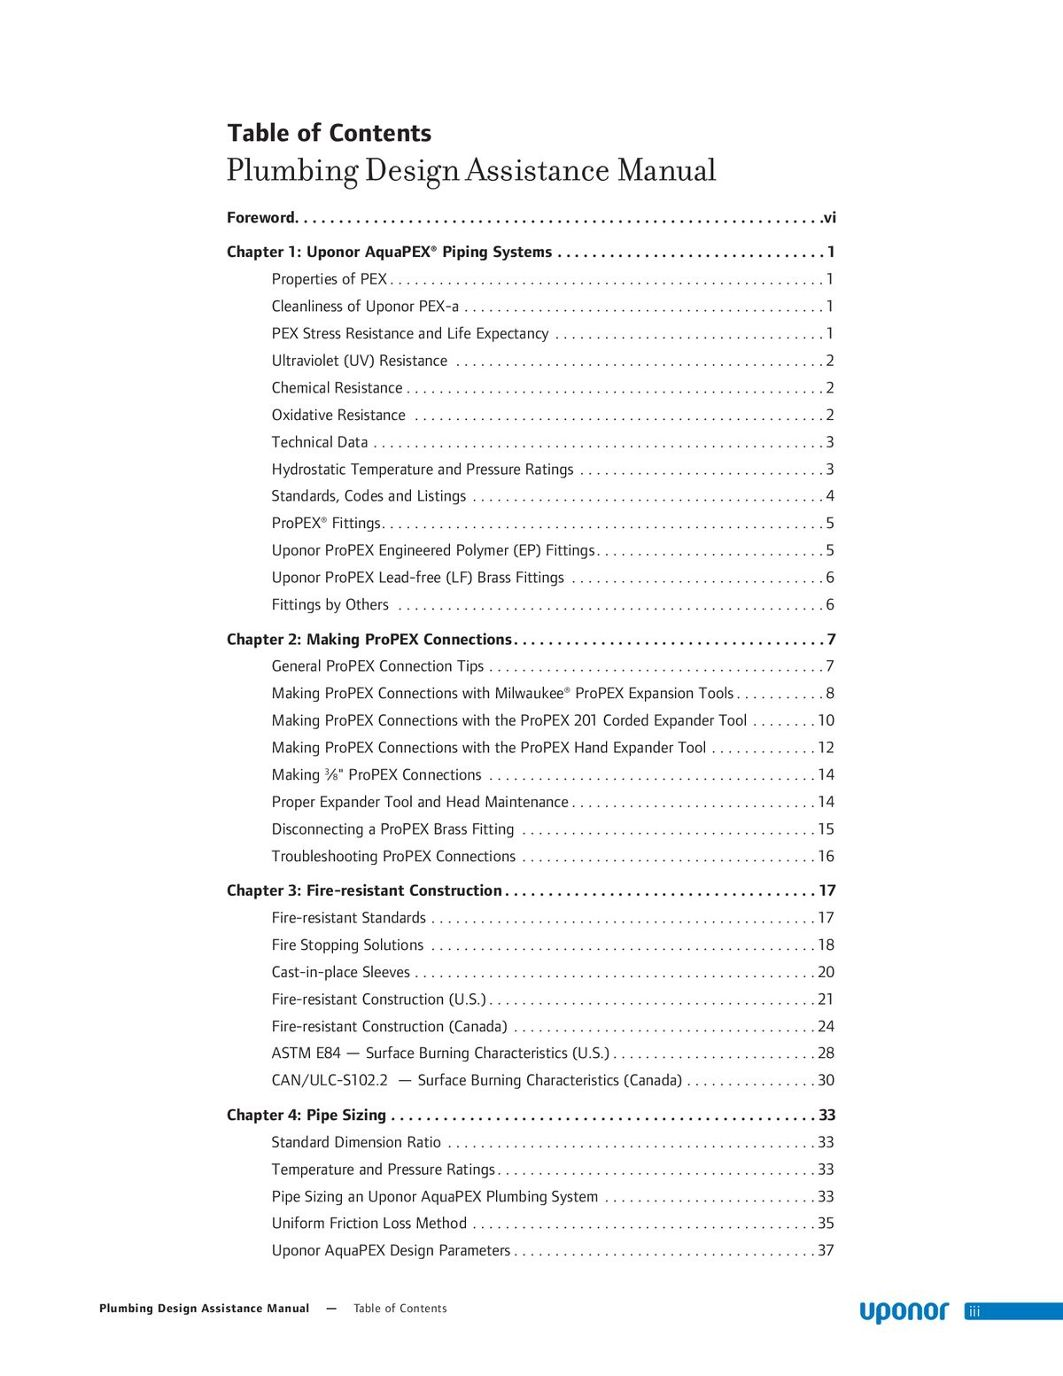 Plumbing Design Assistance Manual (PDAM)